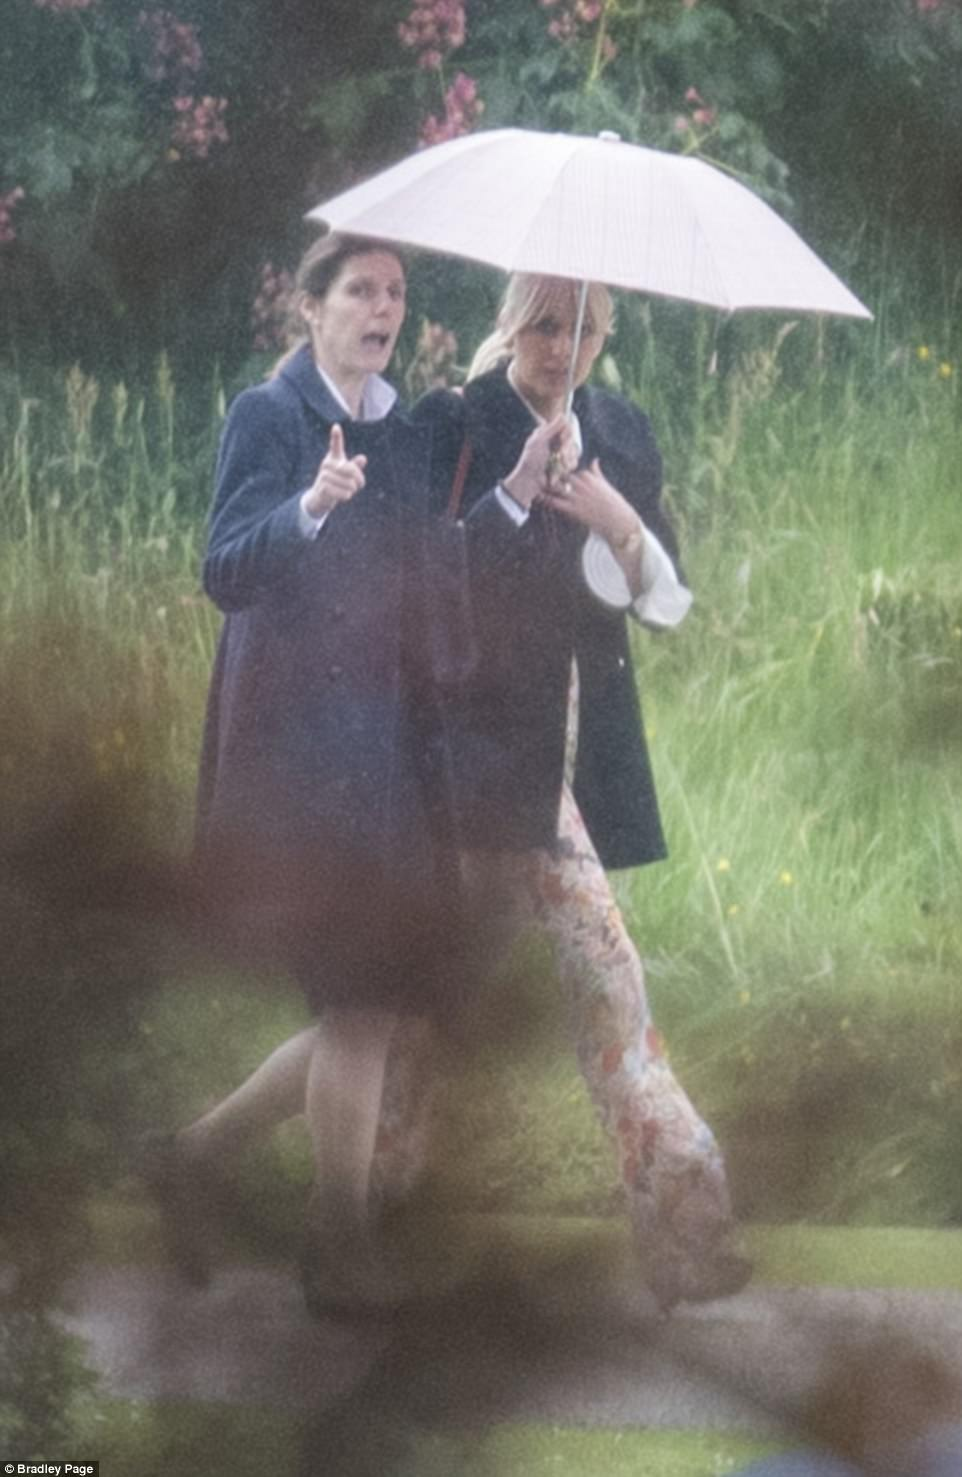 Prince George and Princess Charlotte's Spanish nanny, Maria Borrallo, left, was also seen arriving. The royal youngsters will be page boy and flower girl but didn't appear to be at the rehearsal